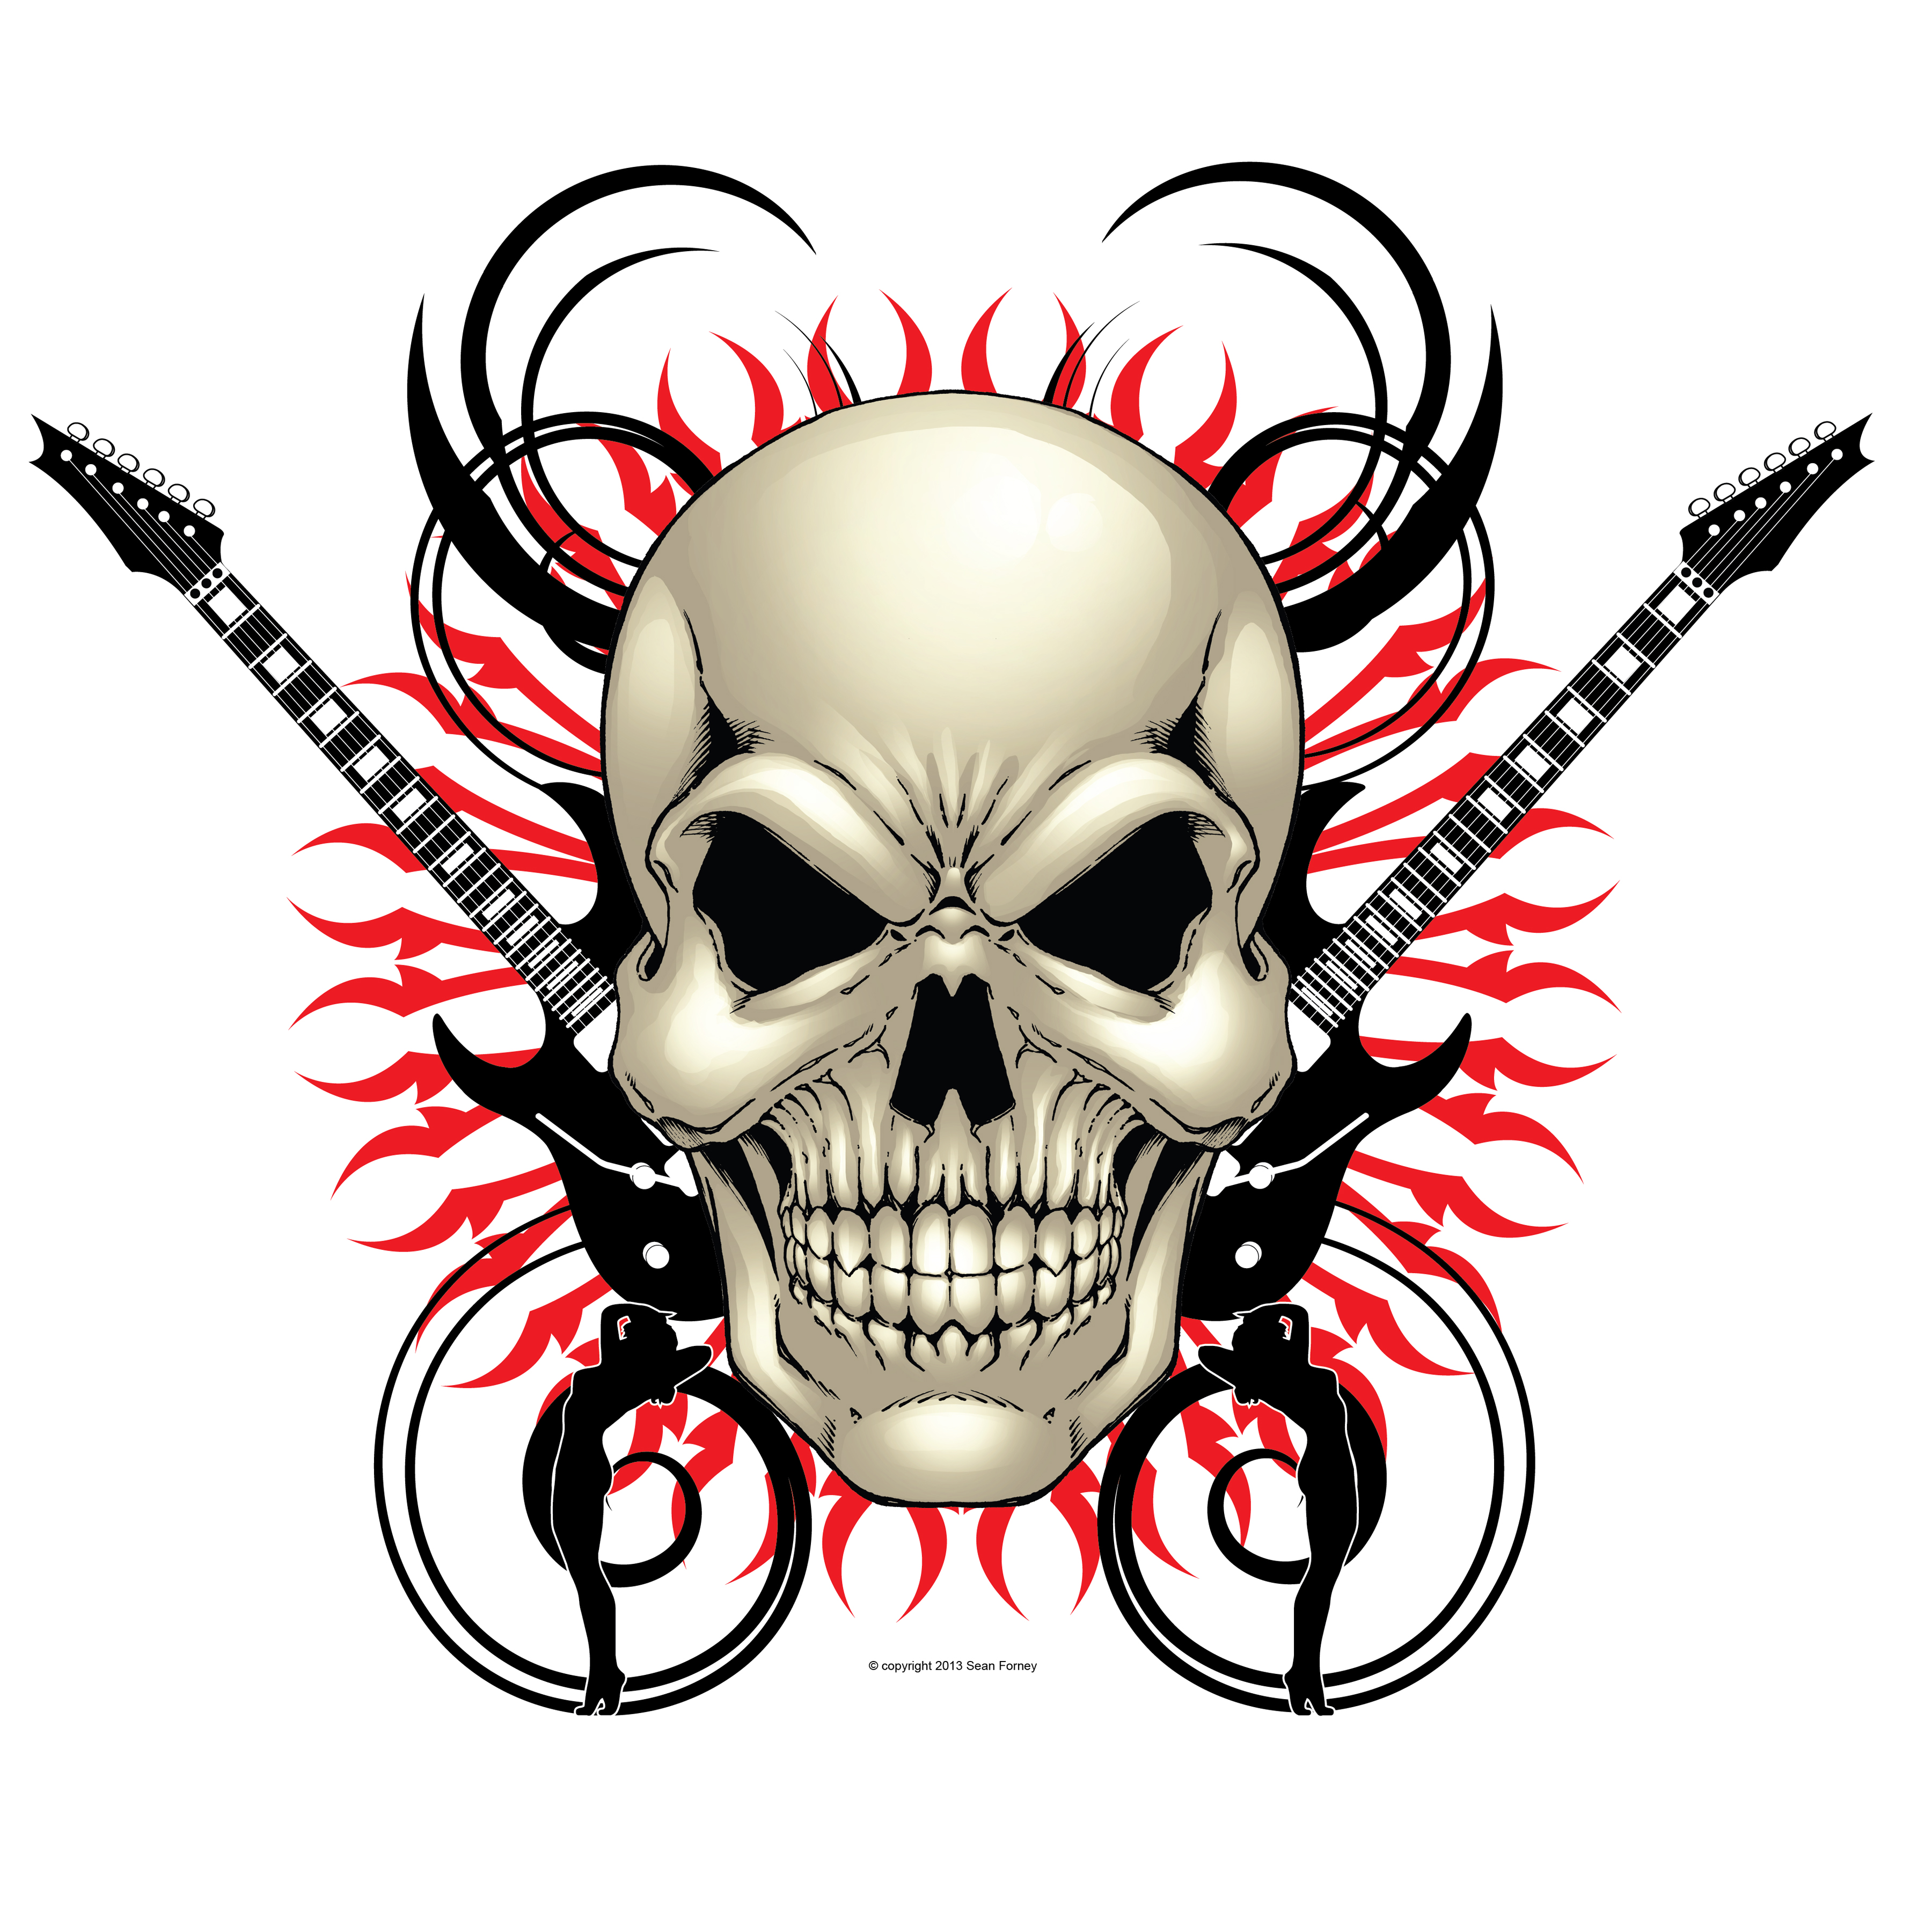 skull design with guitars 12 x 12 $ 10 00 on sale skull and guitar 12 ...